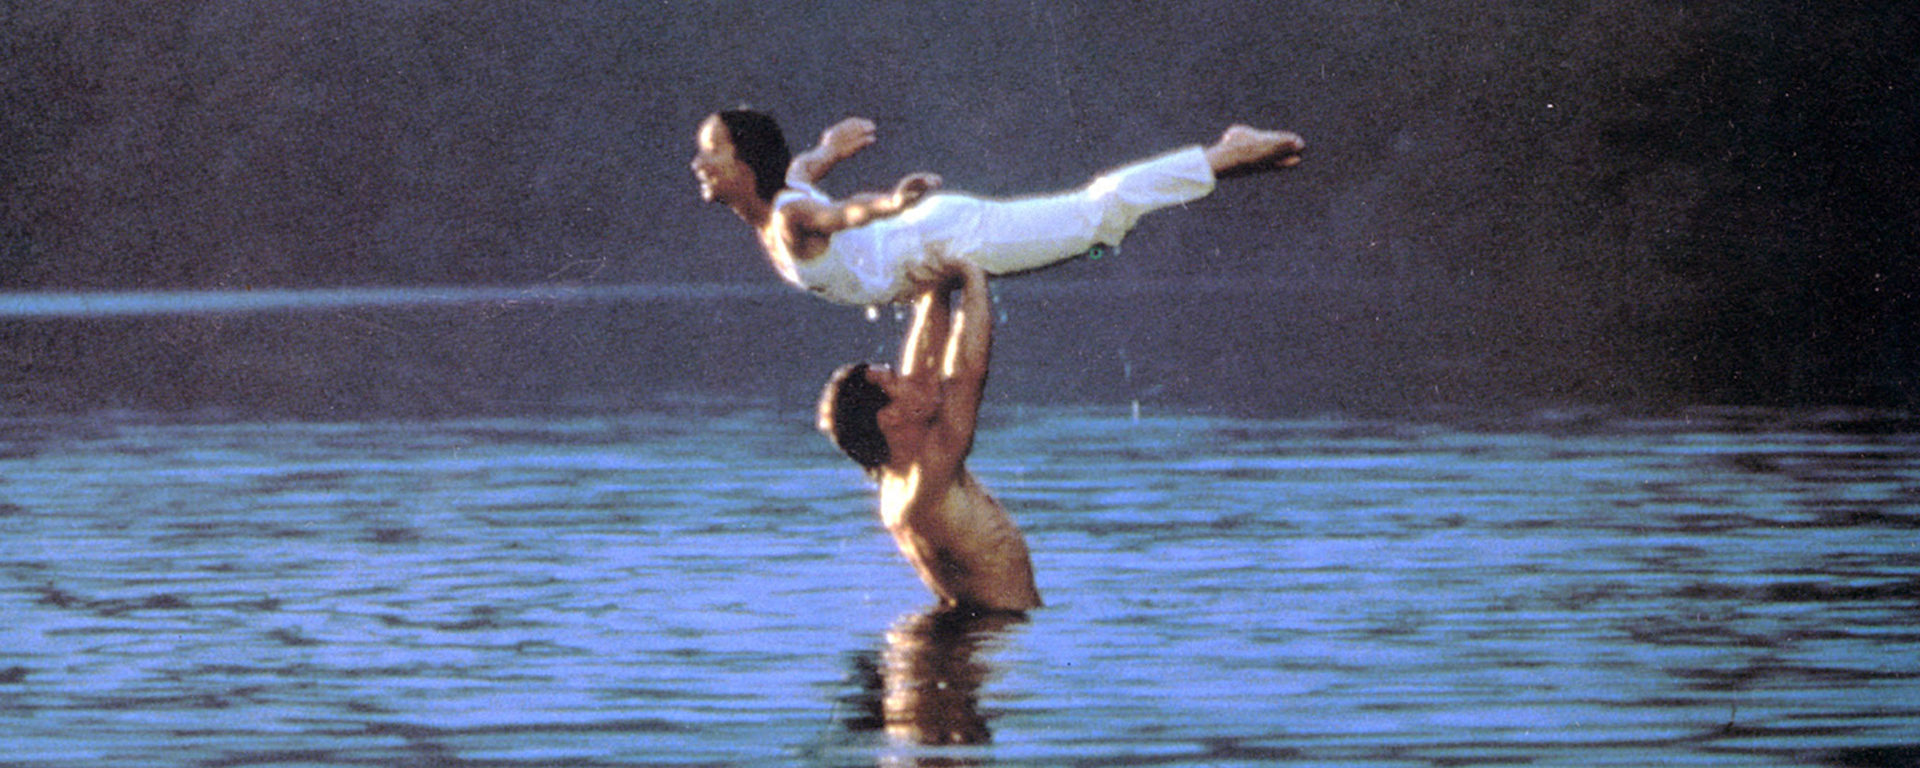 Dirty Dancing 1987 The Movie Structure Archives The Novel Smithy